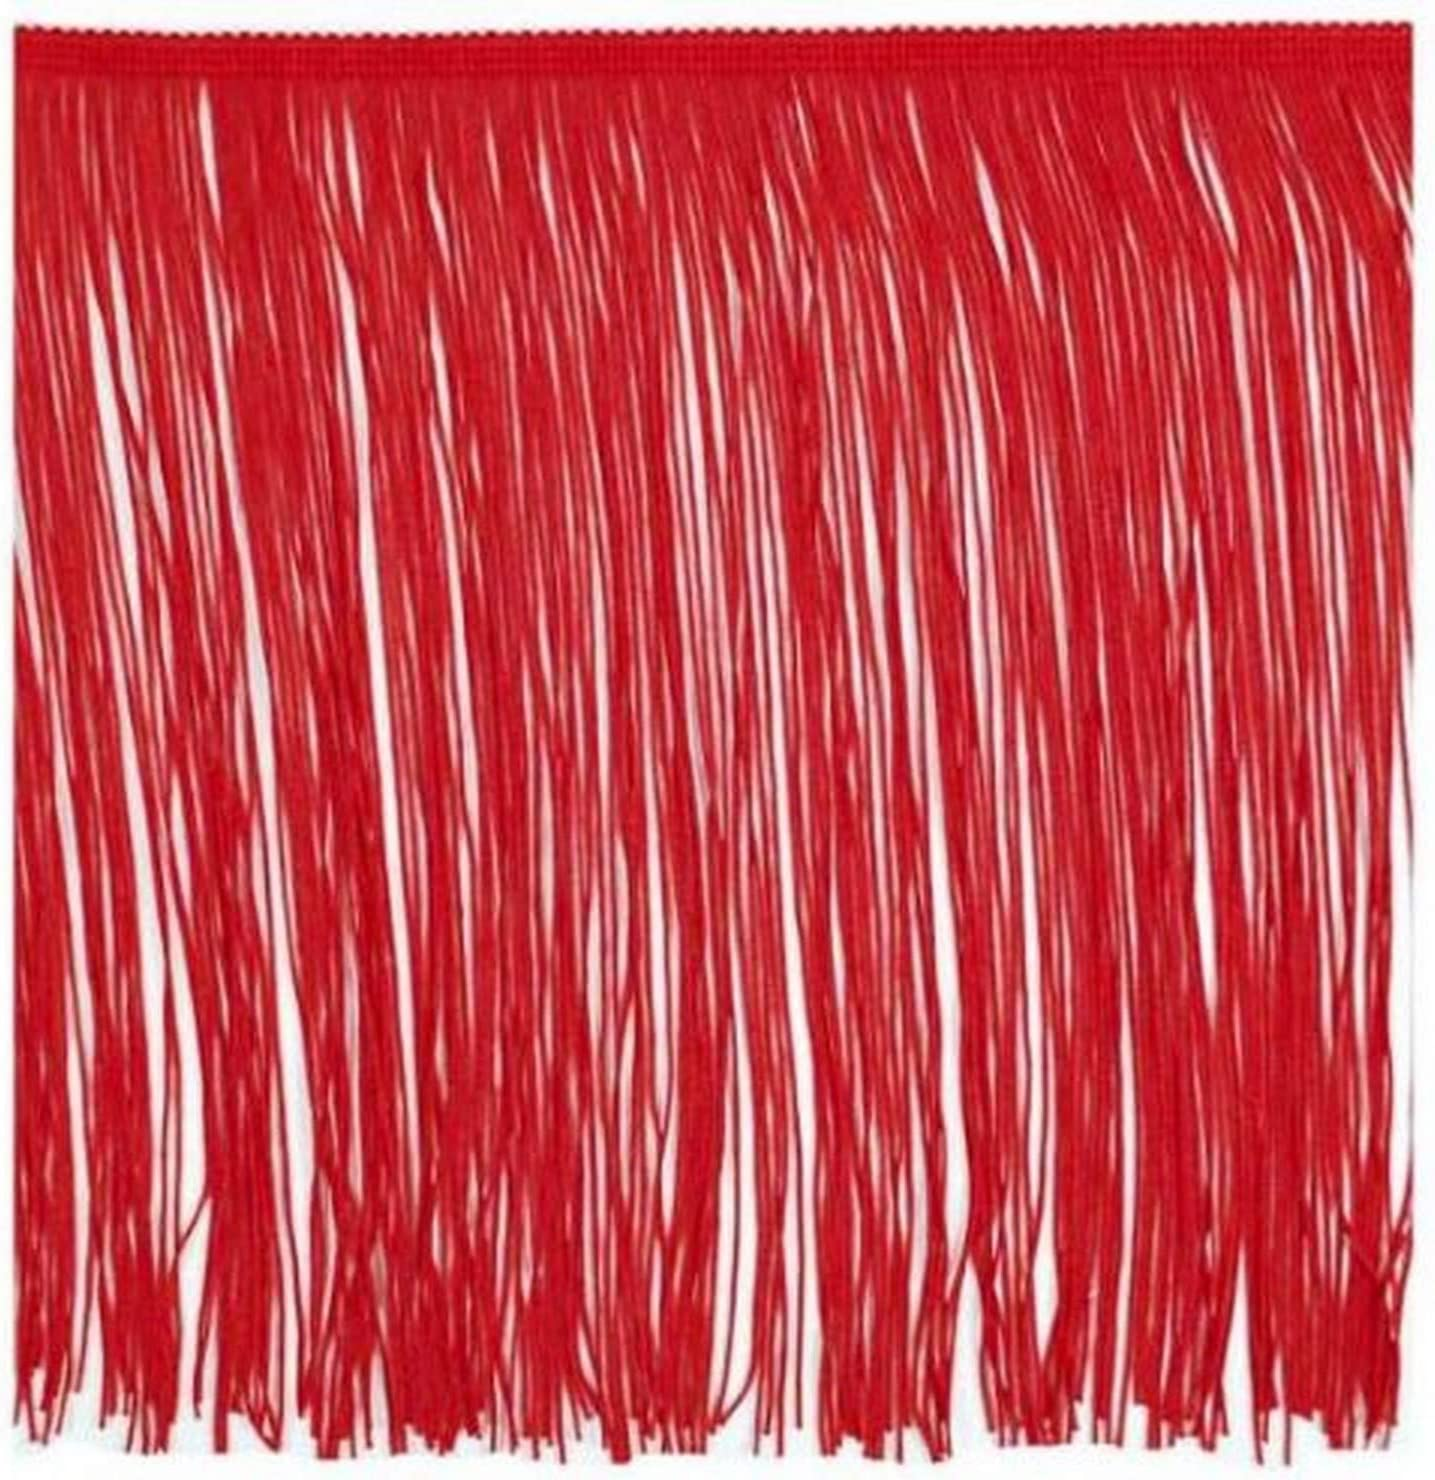 Expo International 5 Yards of 12 Chainette Fringe Trim Red